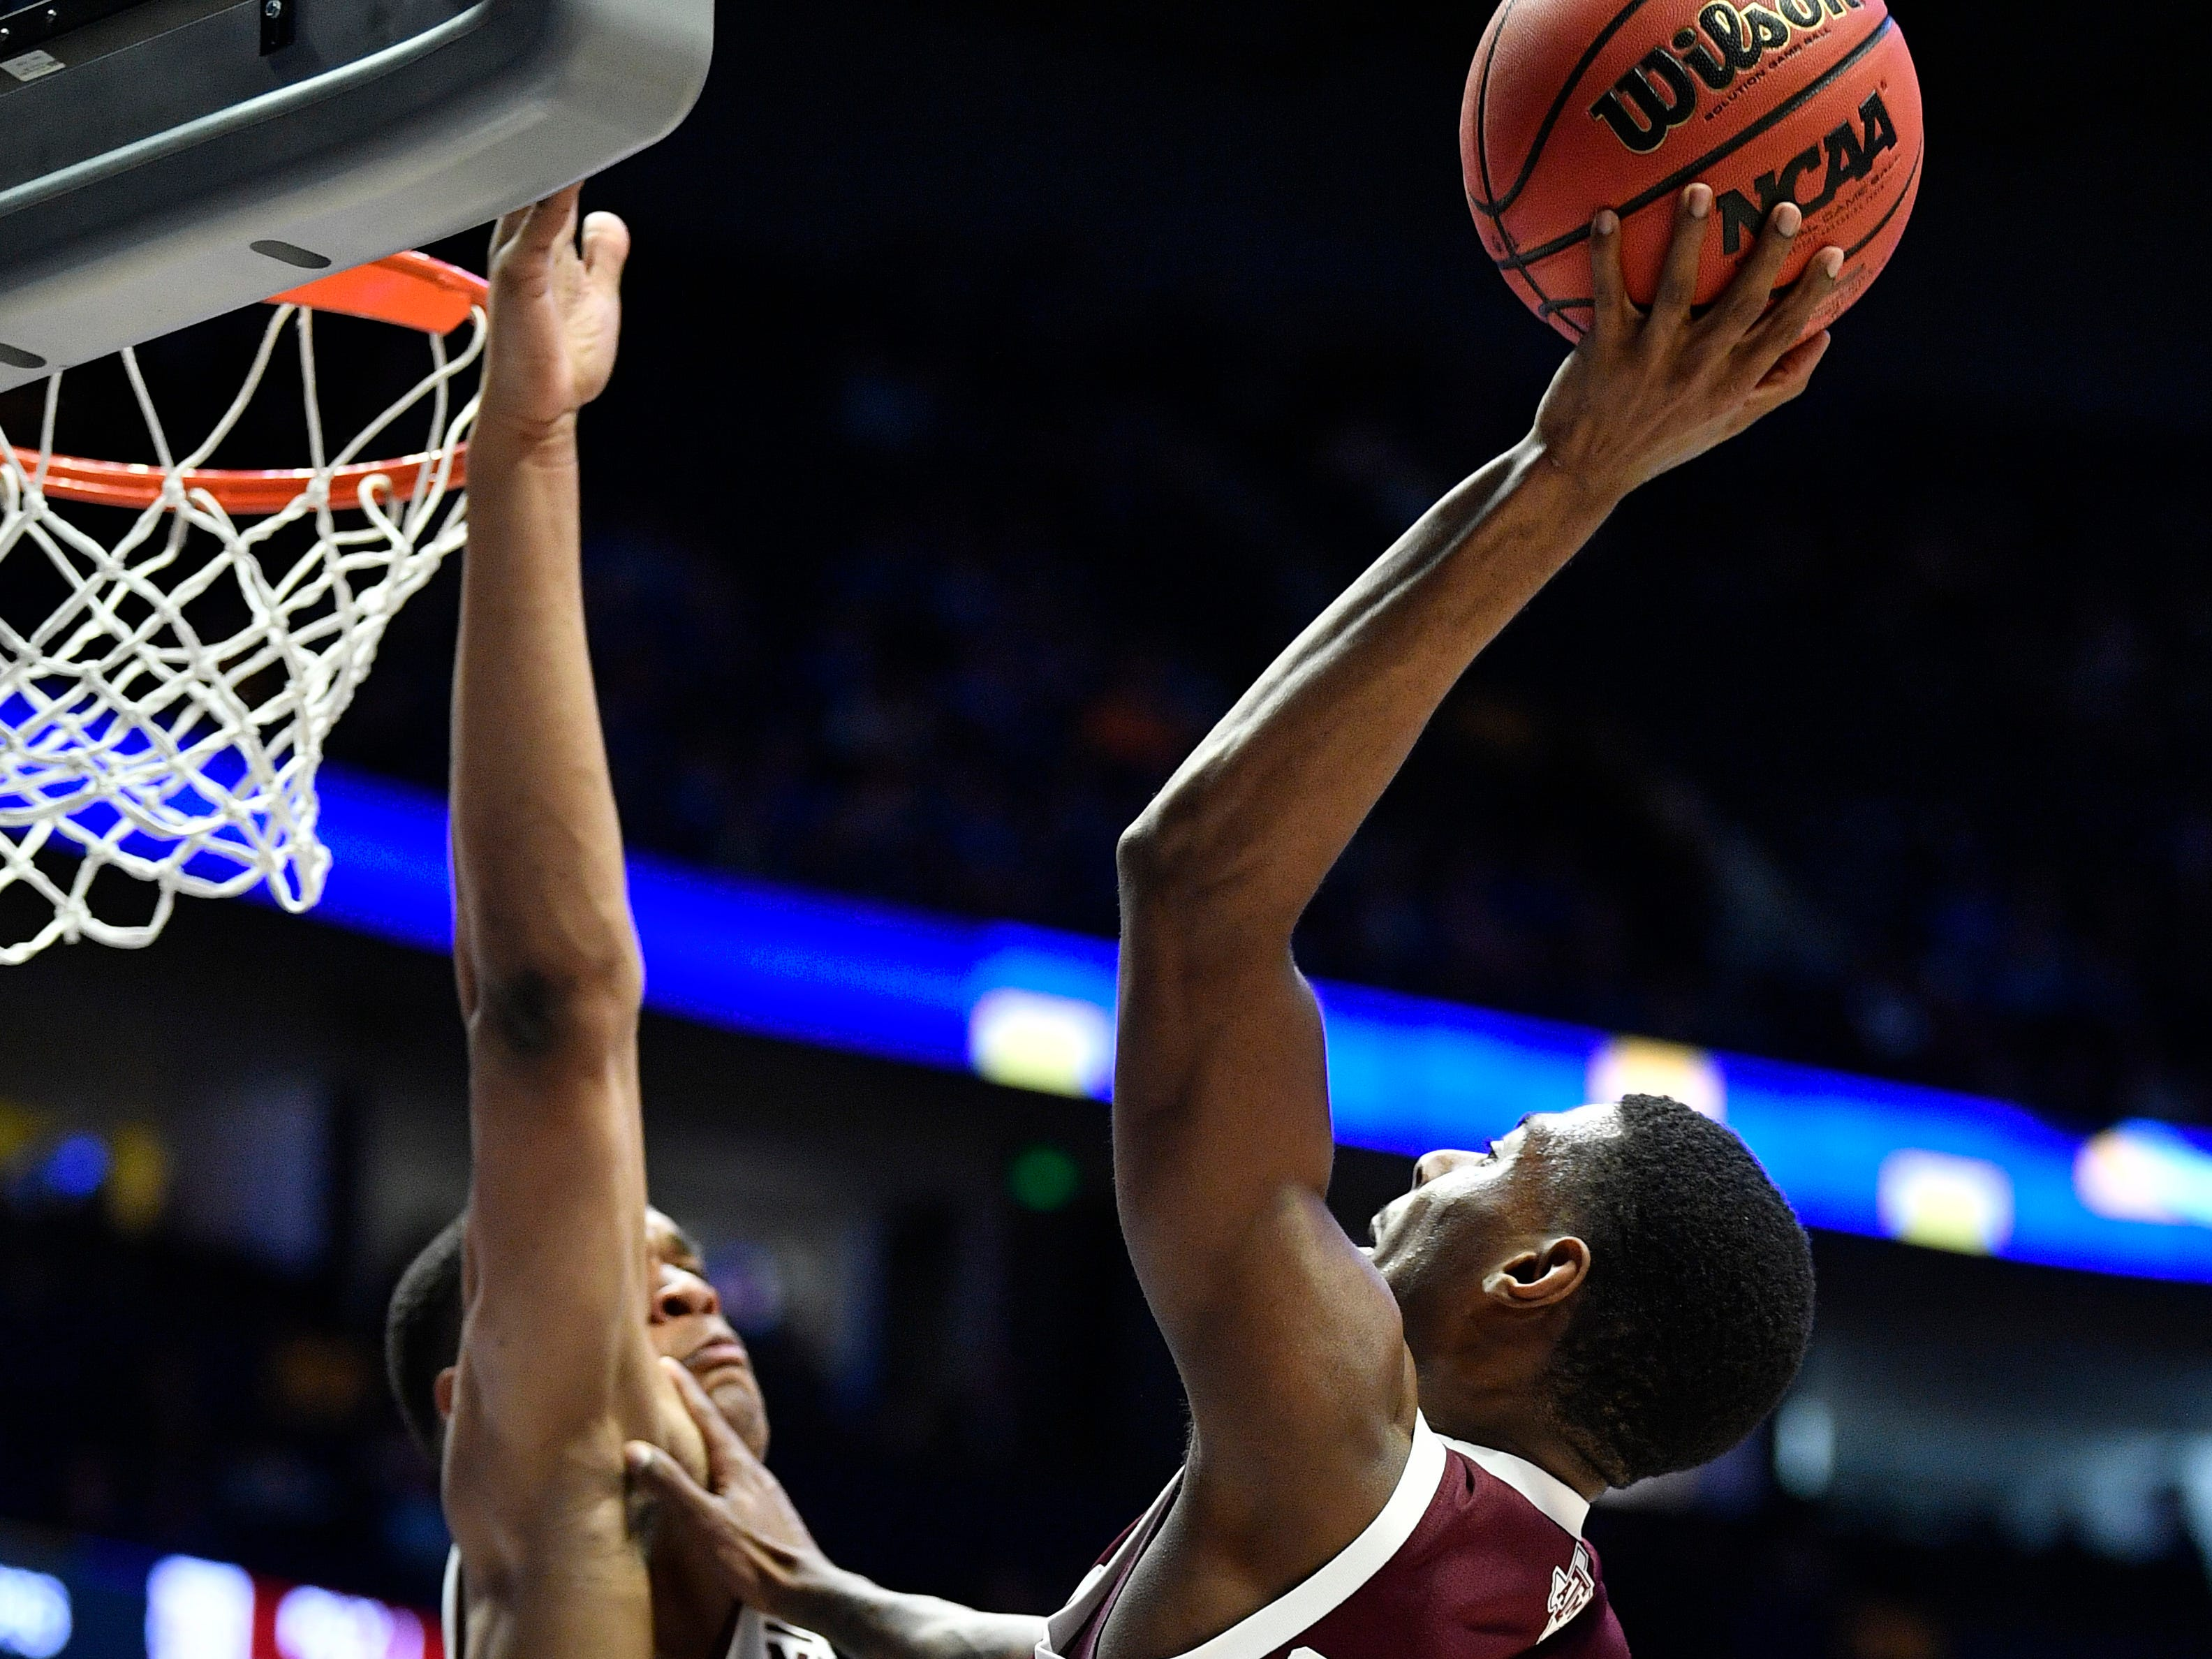 Texas A&M guard Jay Jay Chandler (0) shoots defended by Mississippi State guard Robert Woodard (12) during the first half of the SEC Men's Basketball Tournament game at Bridgestone Arena in Nashville, Tenn., Thursday, March 14, 2019.